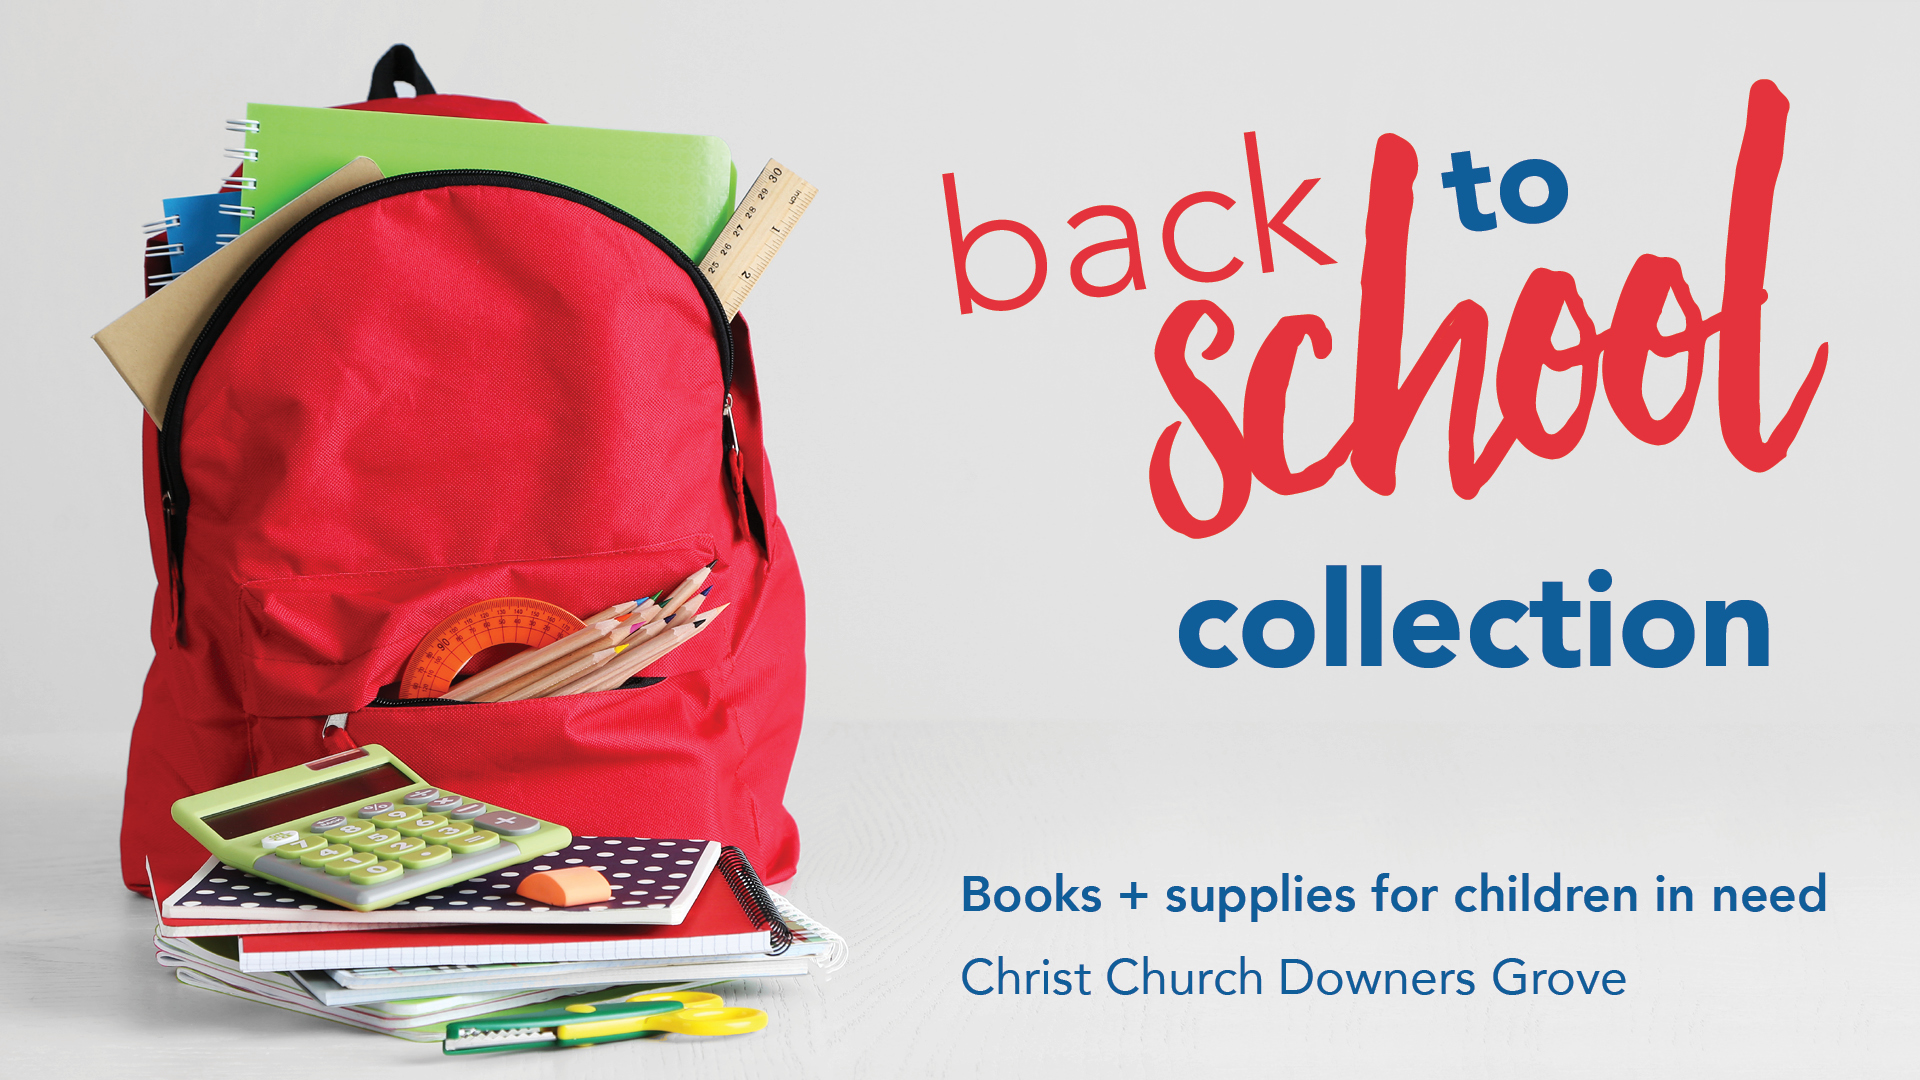 SUMMER SCHOOL SUPPLY COLLECTION